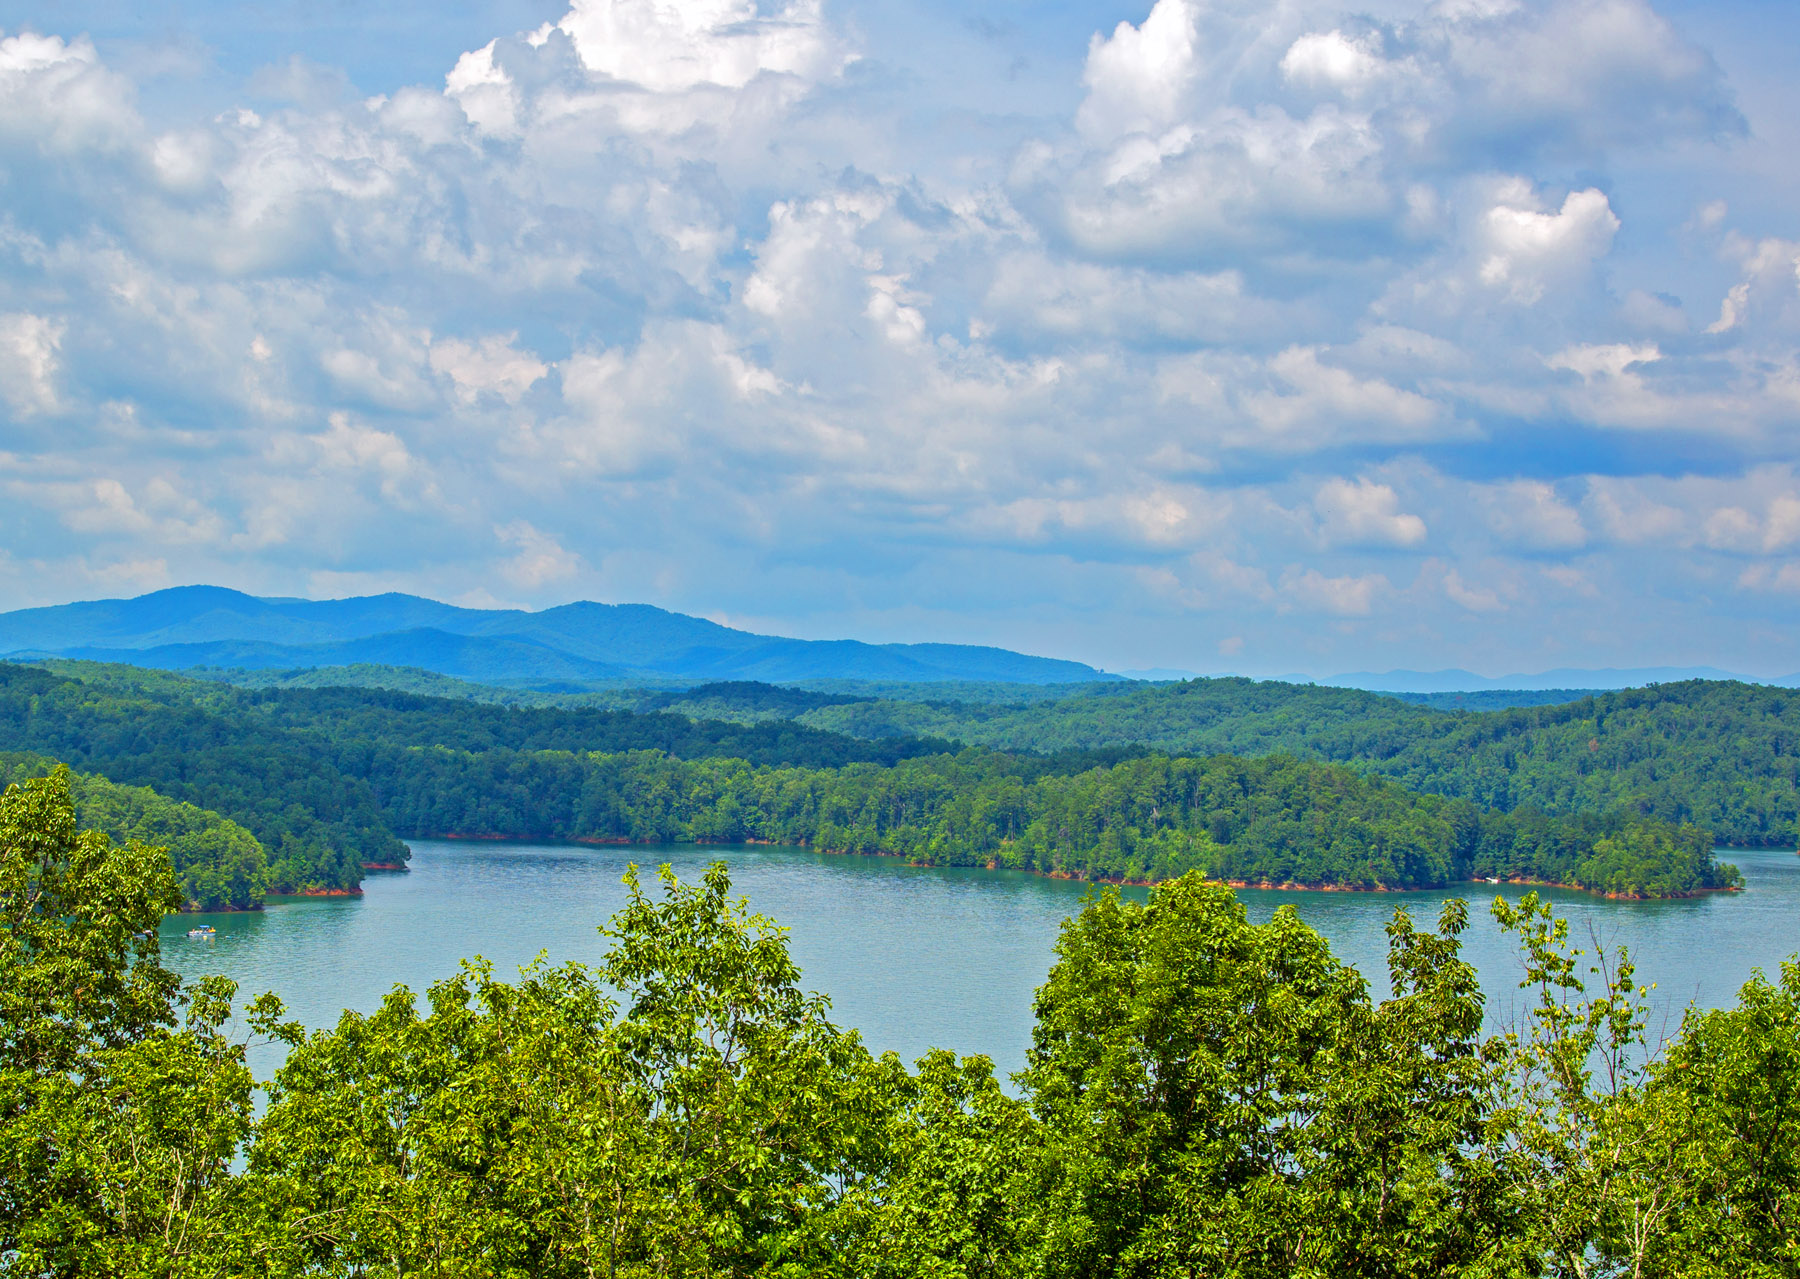 Carters-Lake-from-a-Mountain-Photo-by-Bill-Vanderford